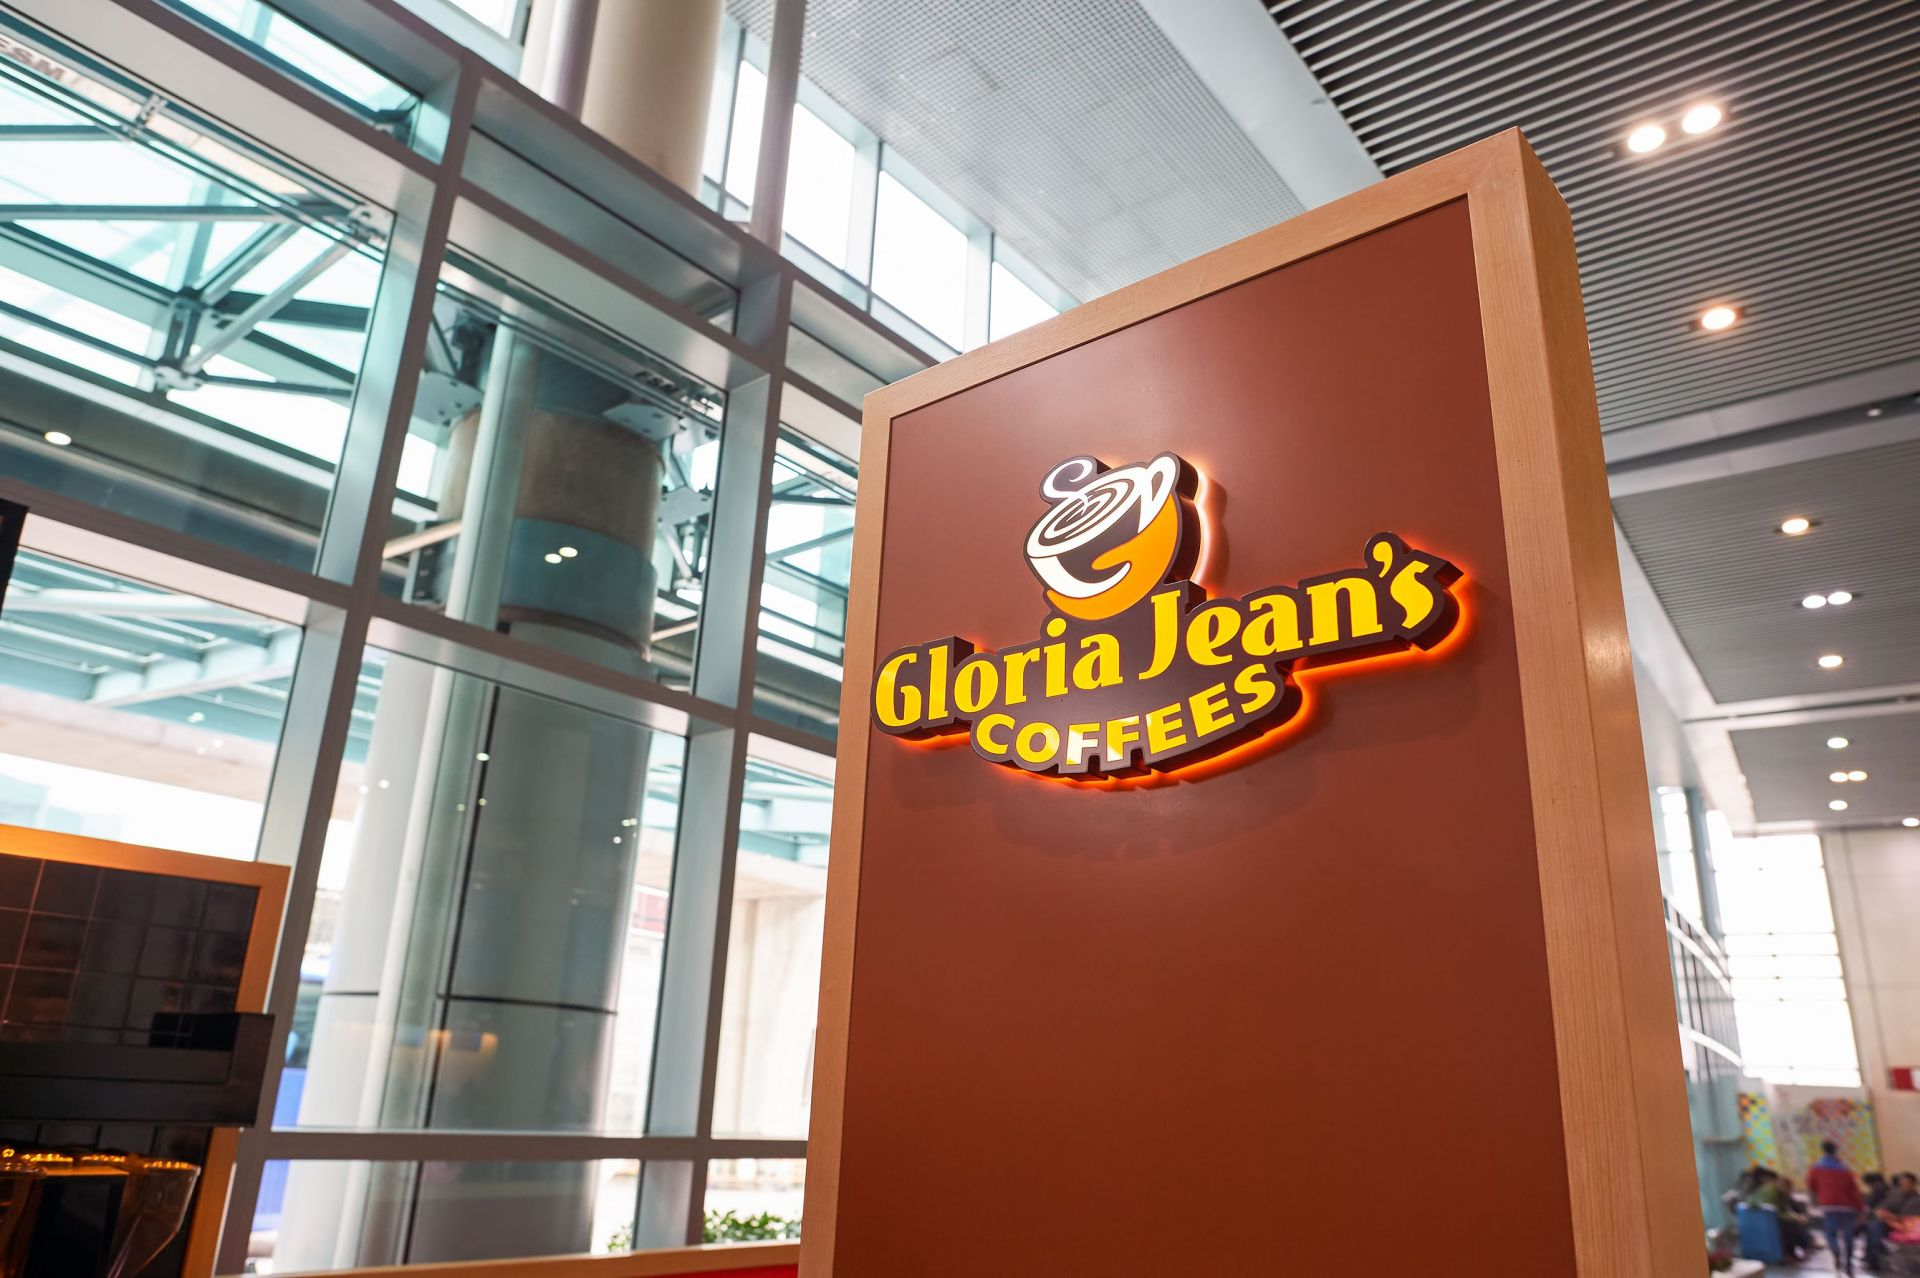 Gloria Jeans Coffee's franchisor RFG recapitalisation in doubt, shares halt | Inside Franchise Business